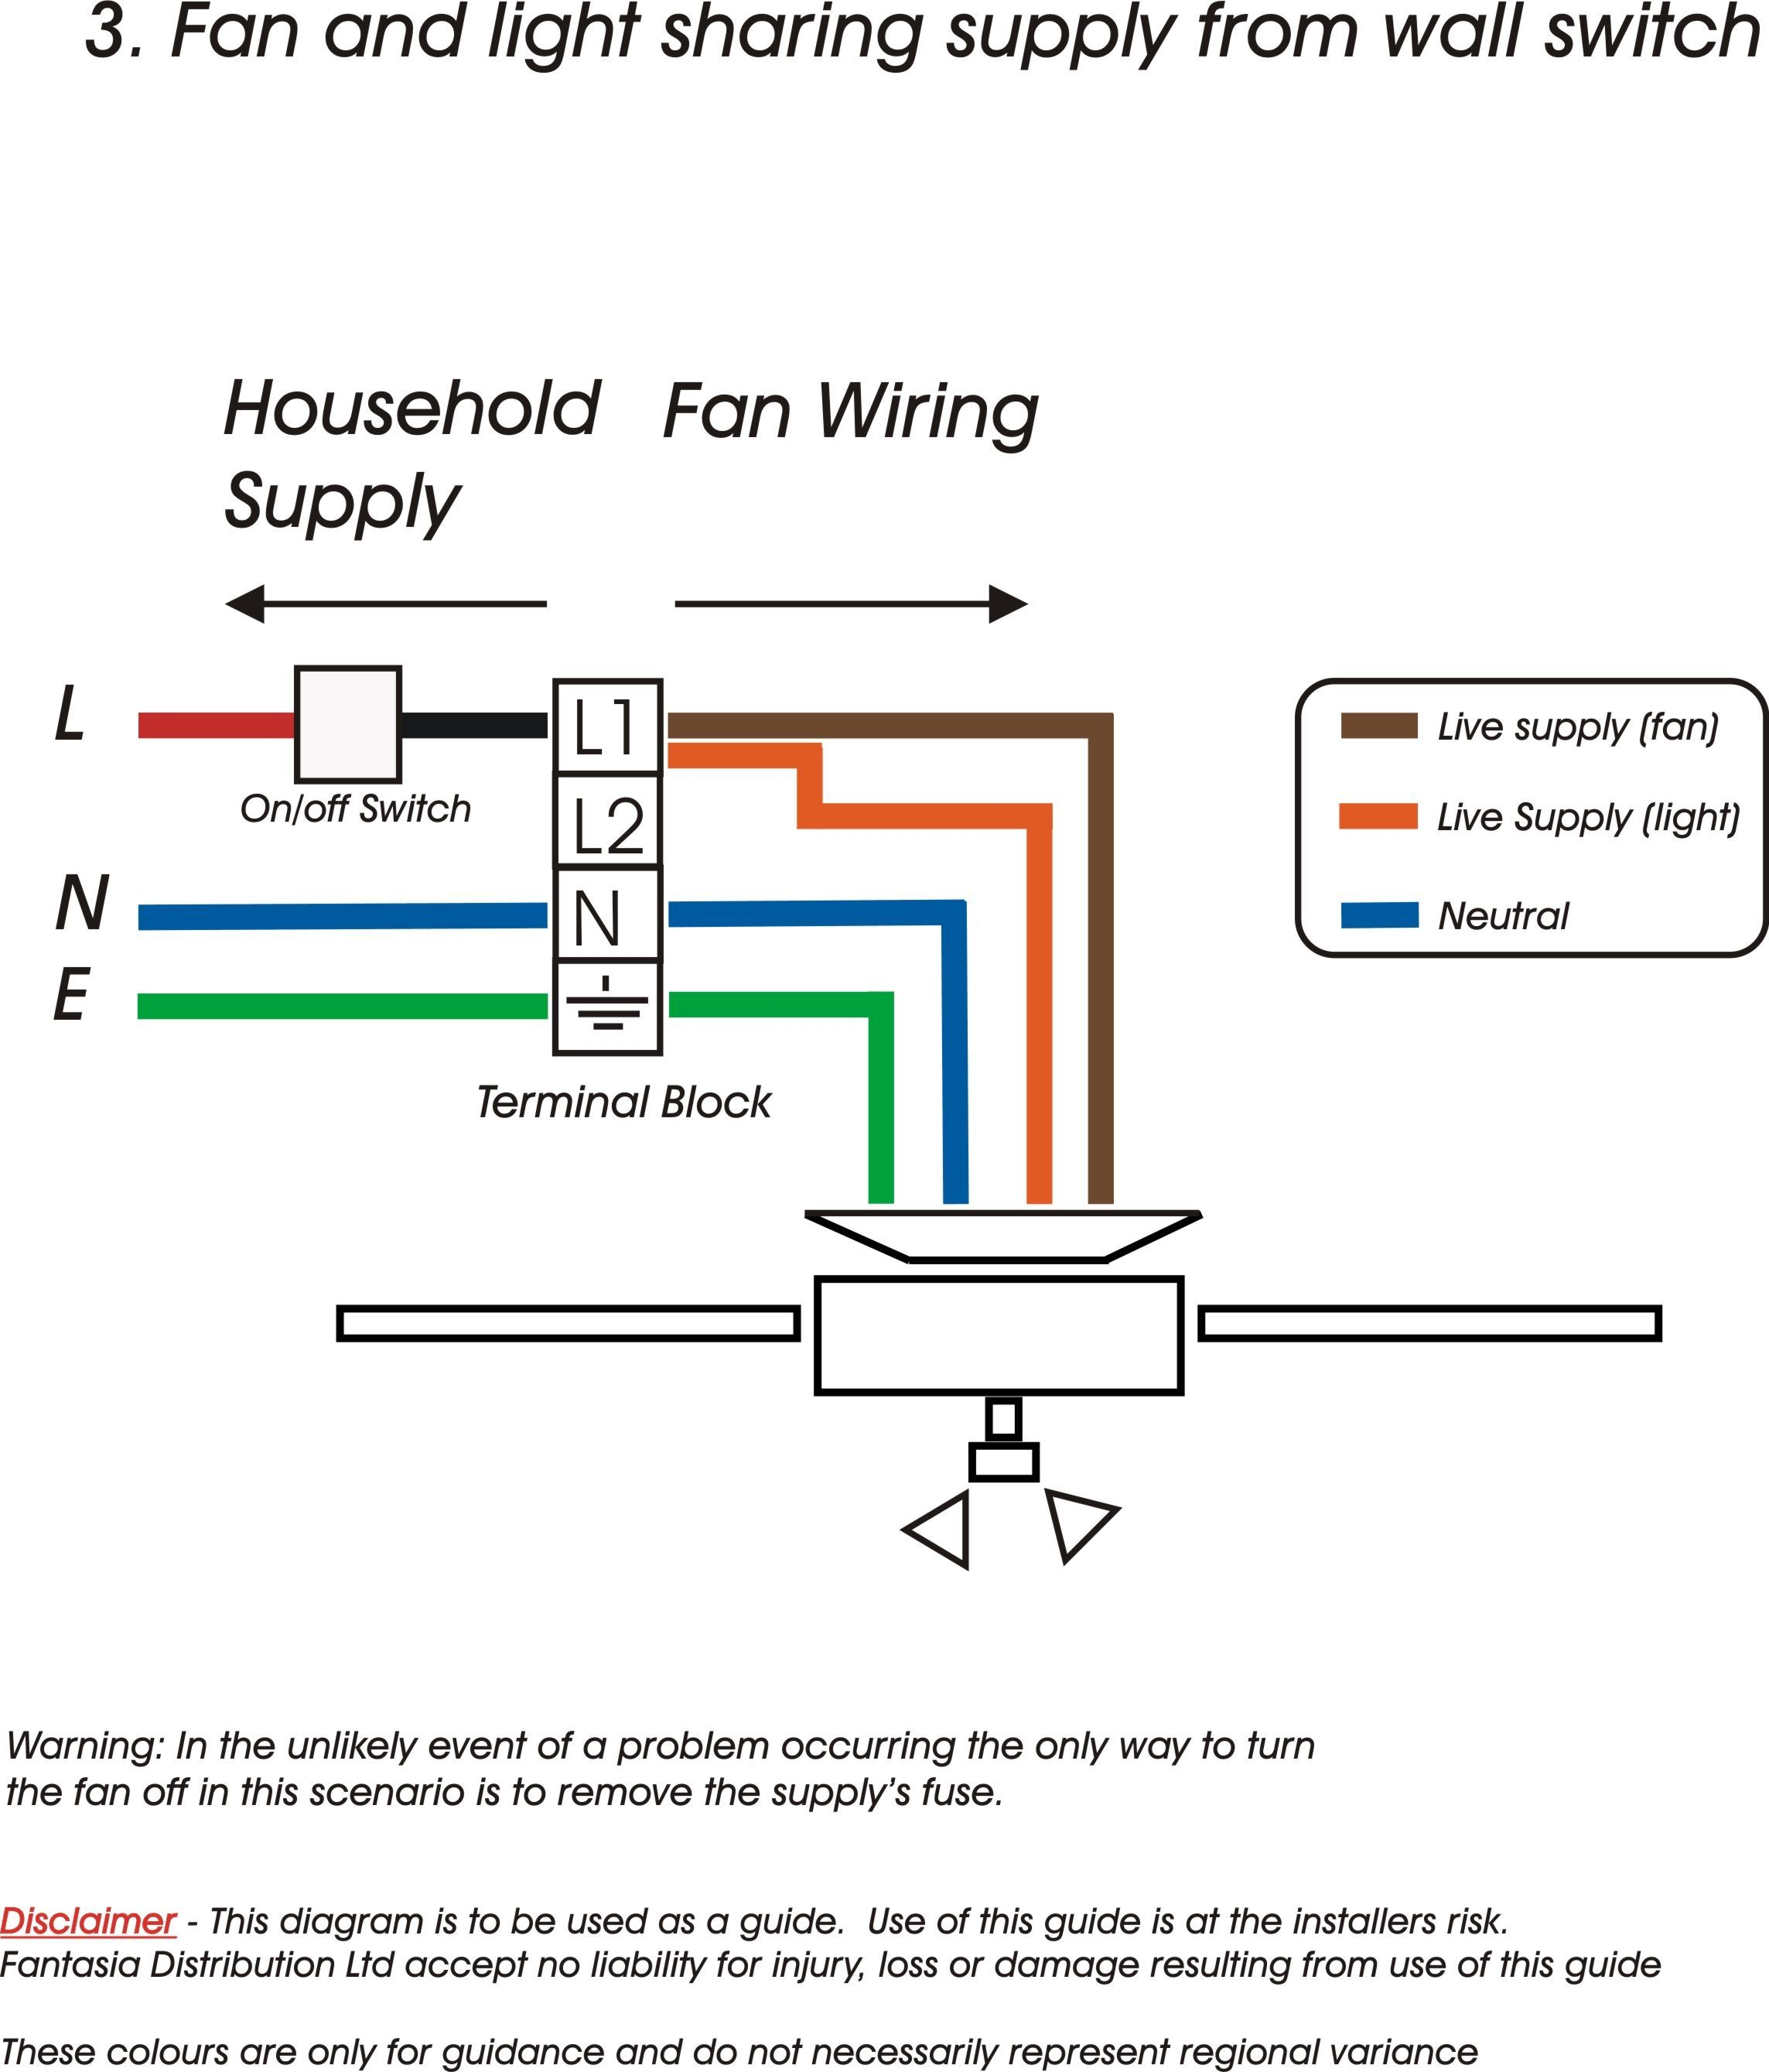 a6e72fabacaaa74231f750a53a3d3cb0 ceiling fan wall switch wiring diagram ladysro info quiet cool wiring diagram at panicattacktreatment.co